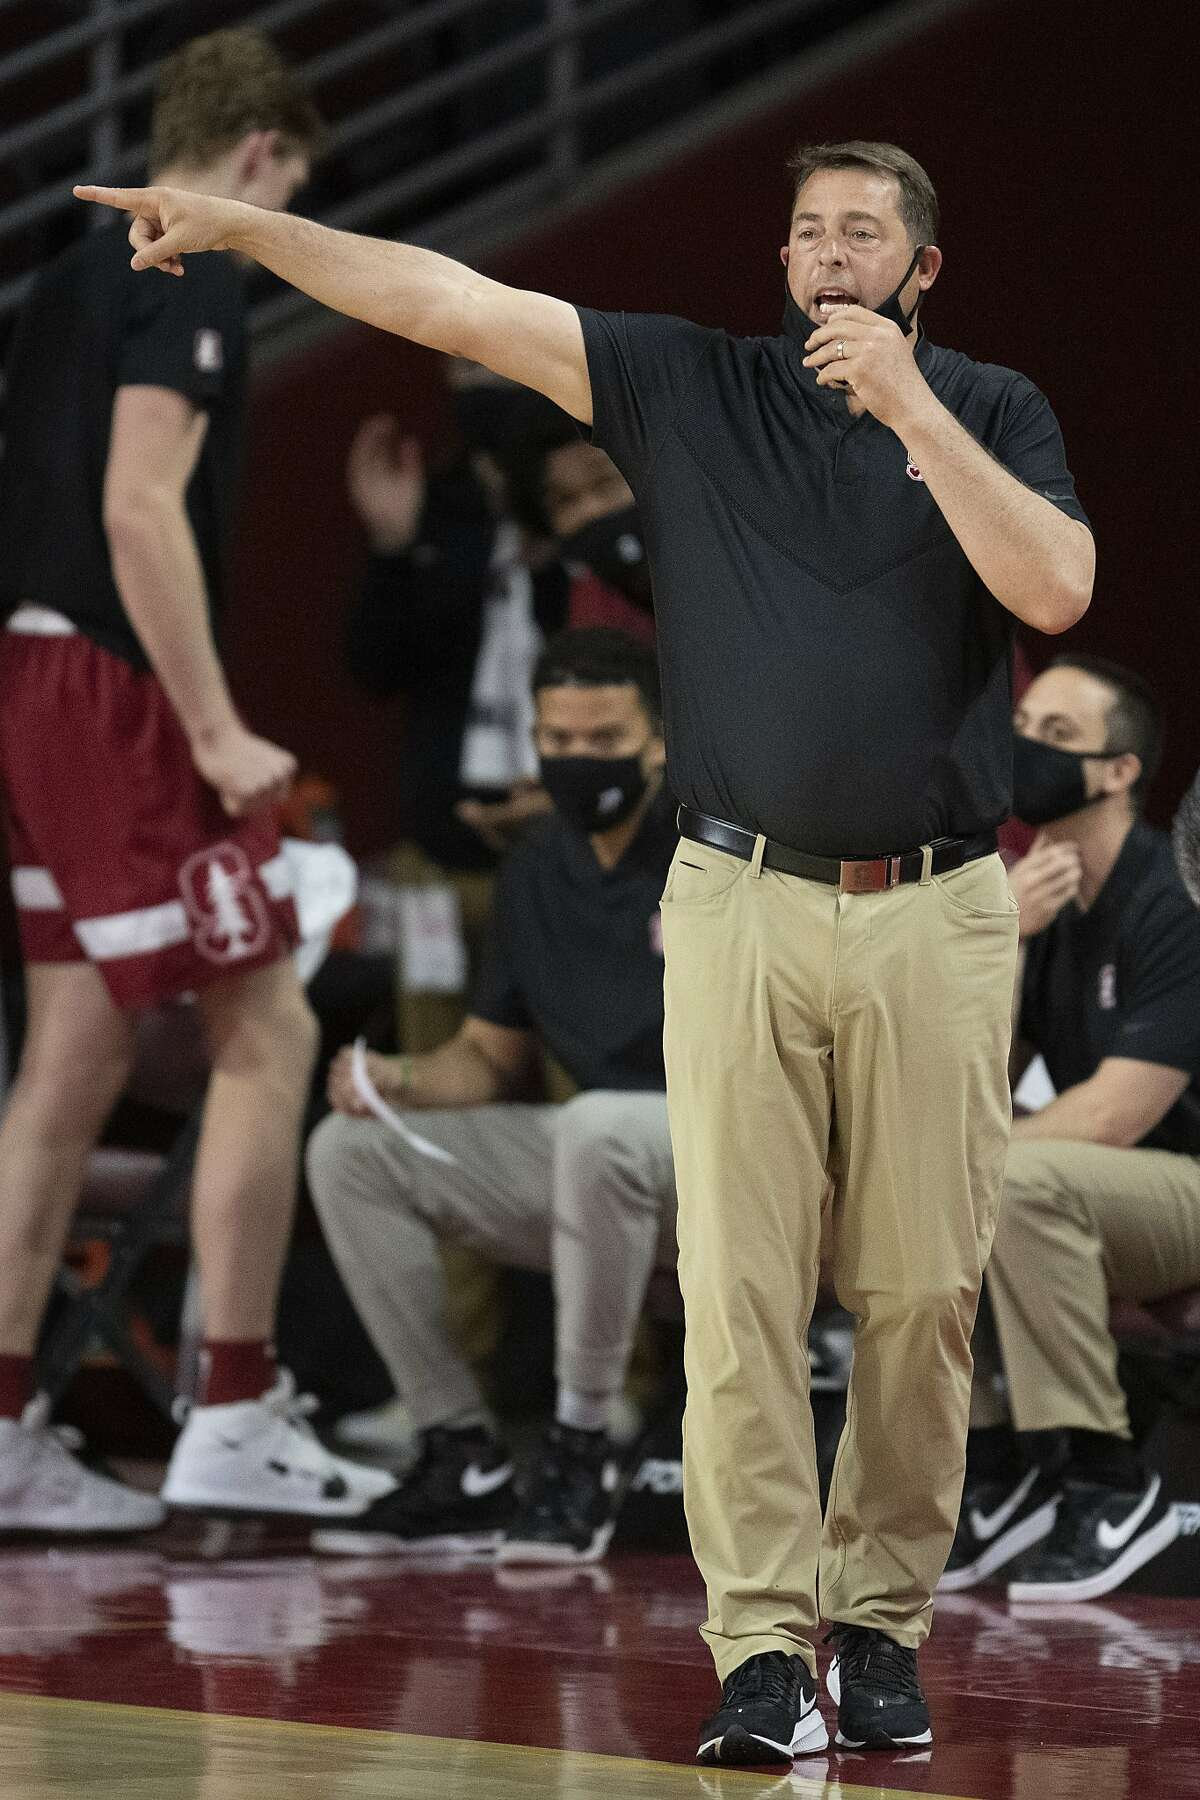 Stanford coach Jerod Haase gives instructions to players during the first half of the team's NCAA college basketball game against Southern California on Wednesday, March 3, 2021, in Los Angeles. (AP Photo/Kyusung Gong)